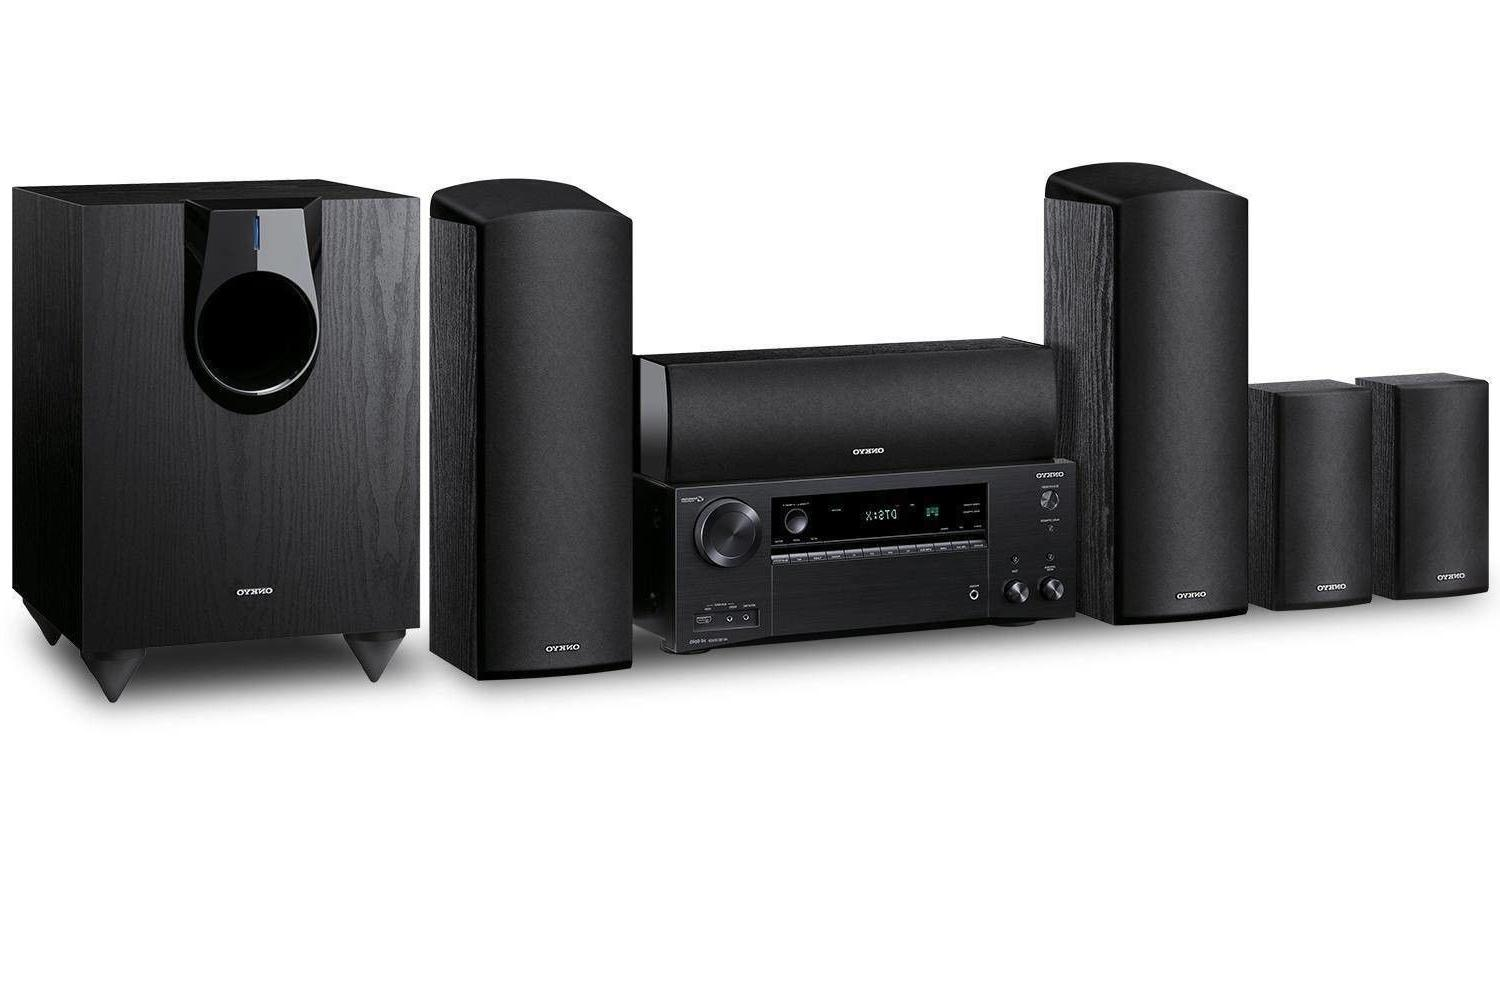 Onkyo HT-S7800 5.1.2 Ch. Dolby Atmos Home Theater Package Pr